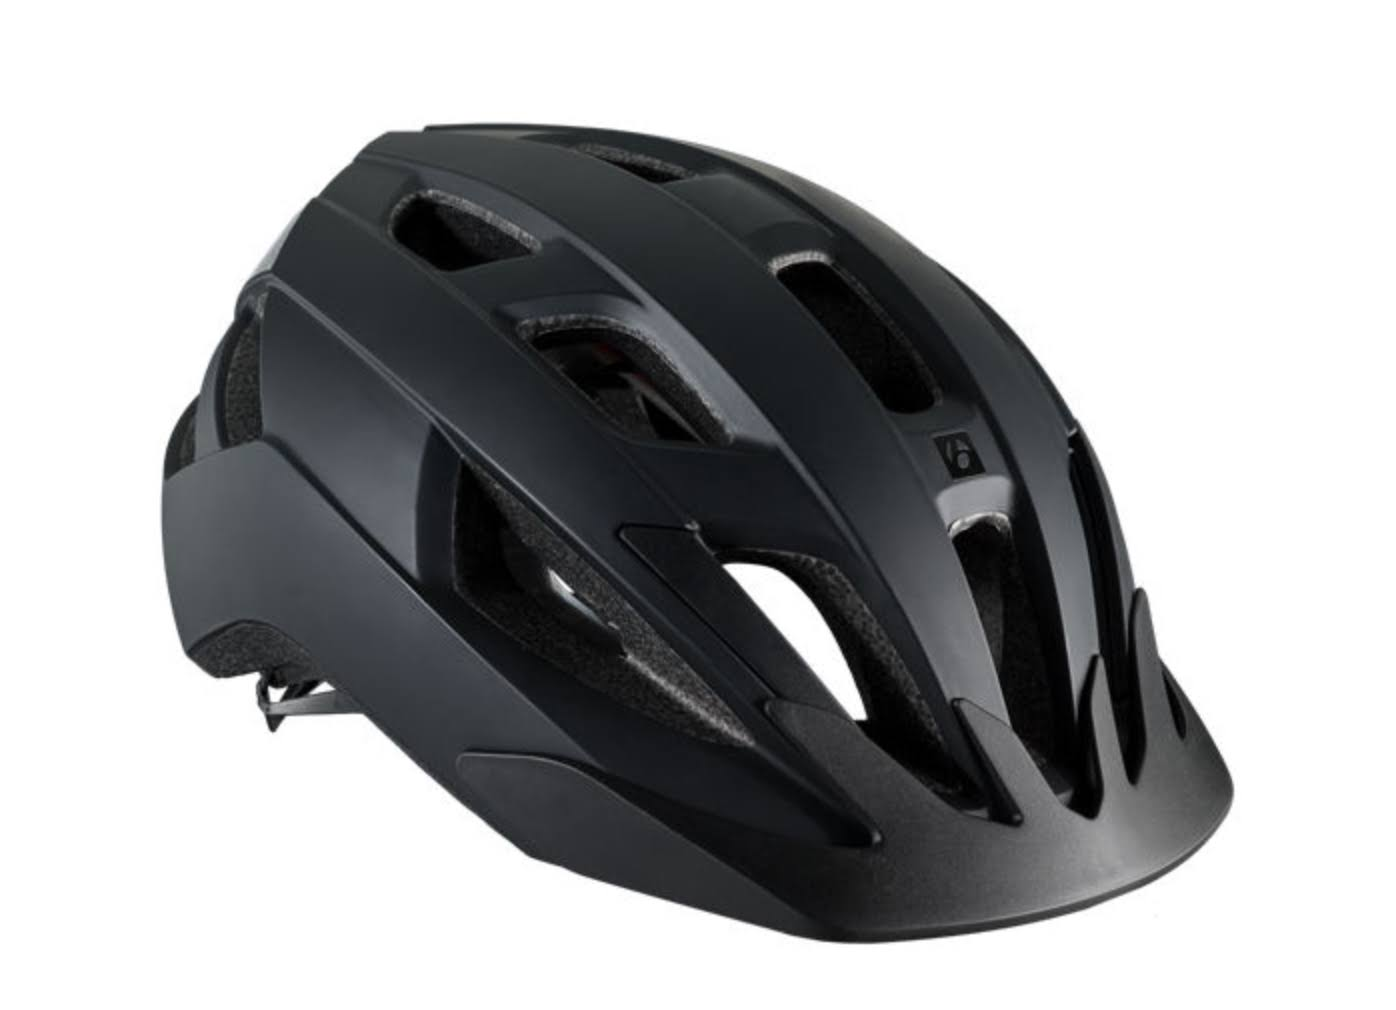 Bontrager Solstice MIPS Bike Helmet - Black - Medium/Large